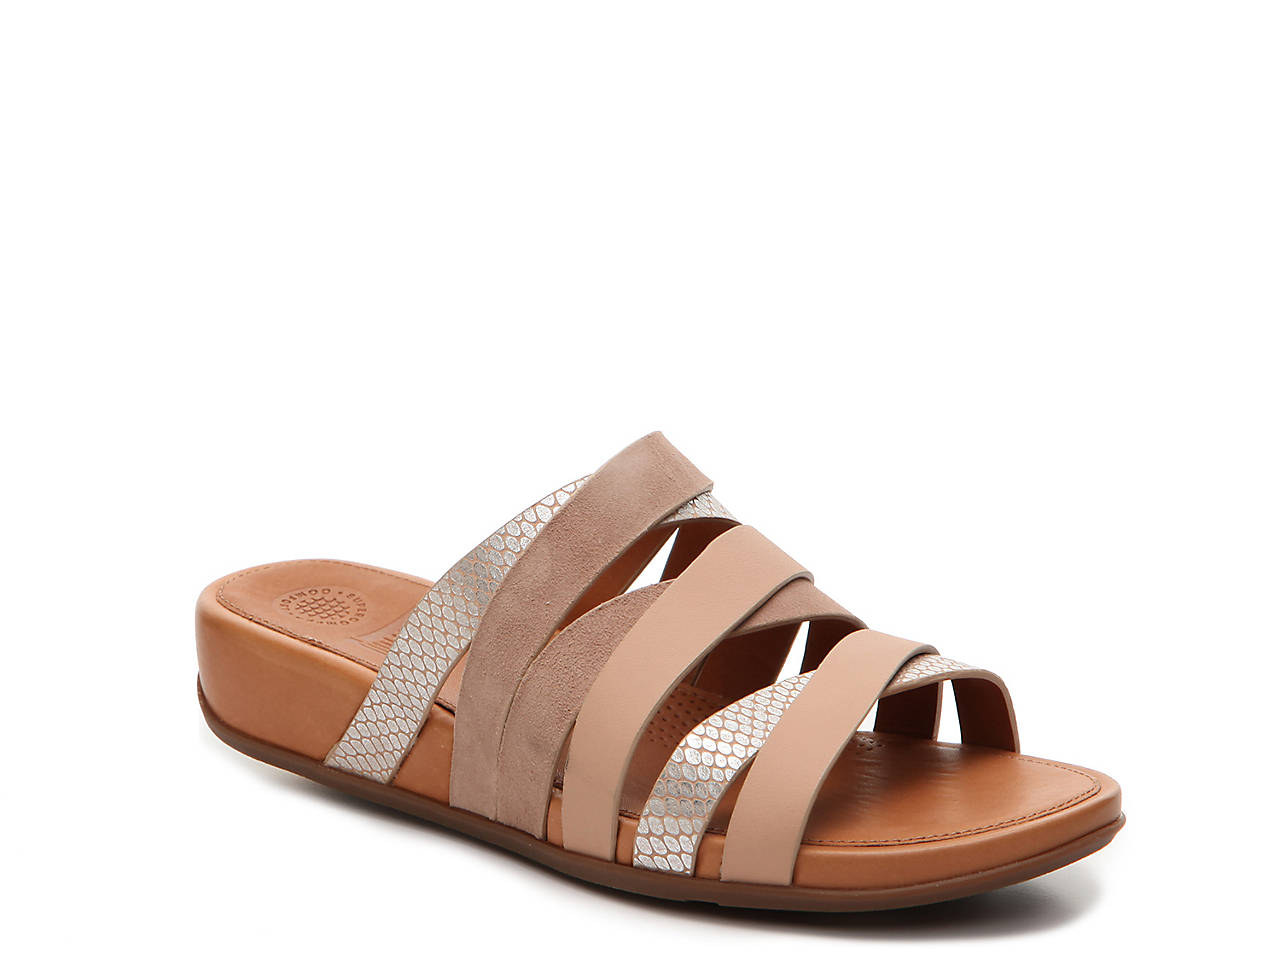 6b8ad3b94ed FitFlop Lumy Wedge Sandal Women s Shoes